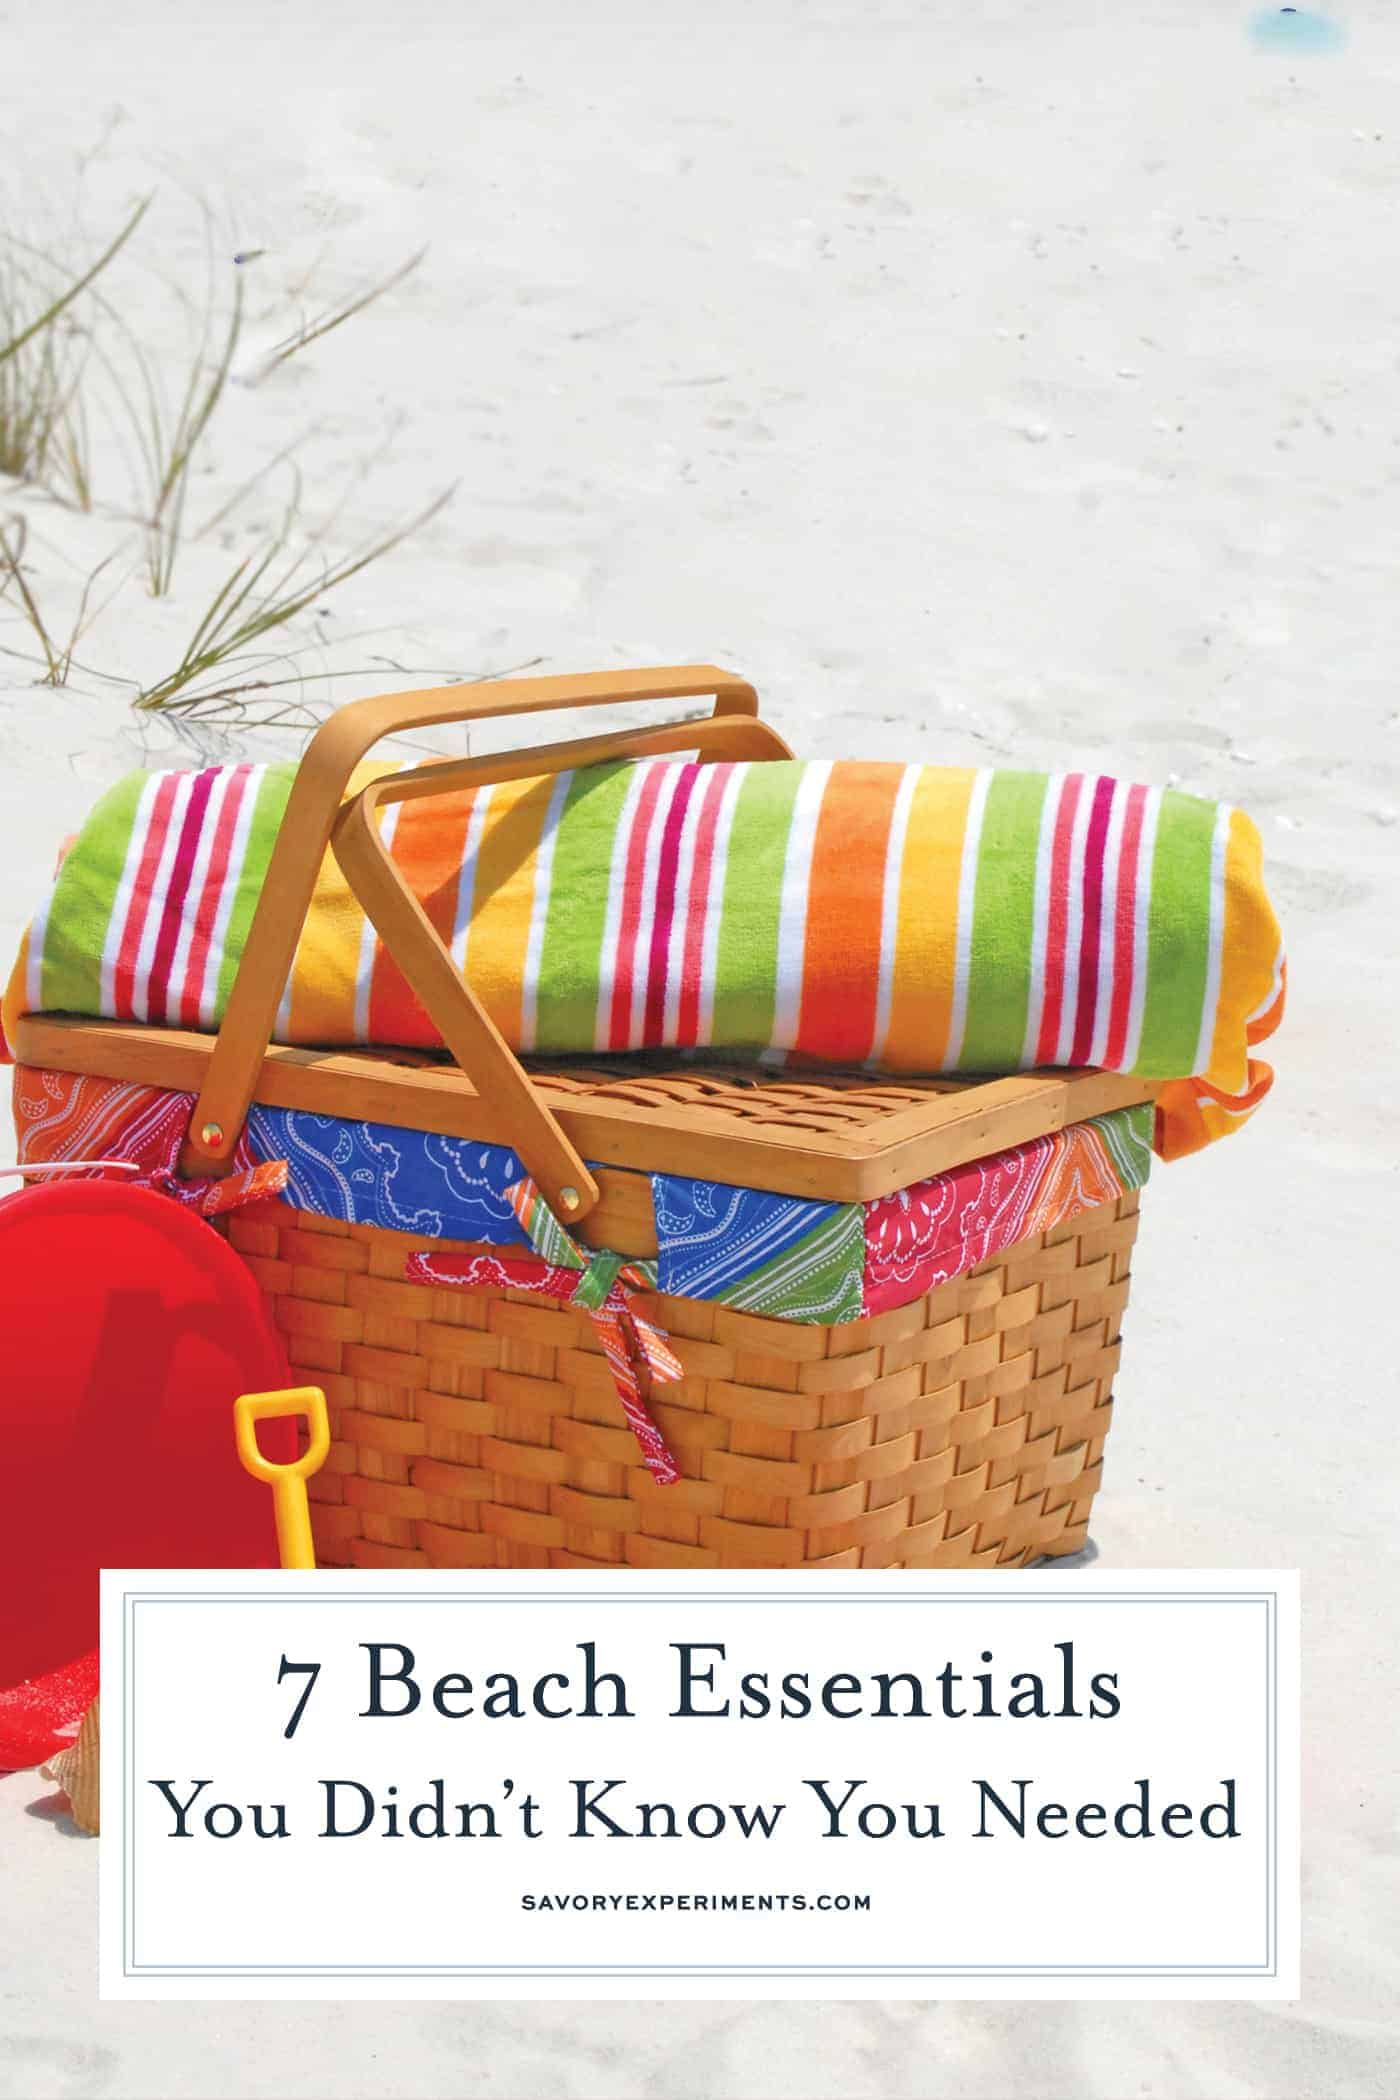 Taking a trip to the beach soon? You may think you have everything you needed, but these are 7 beach essentials you didn't know you needed! I bet you've never heard the tip in #4! www.savoryexperiments.com